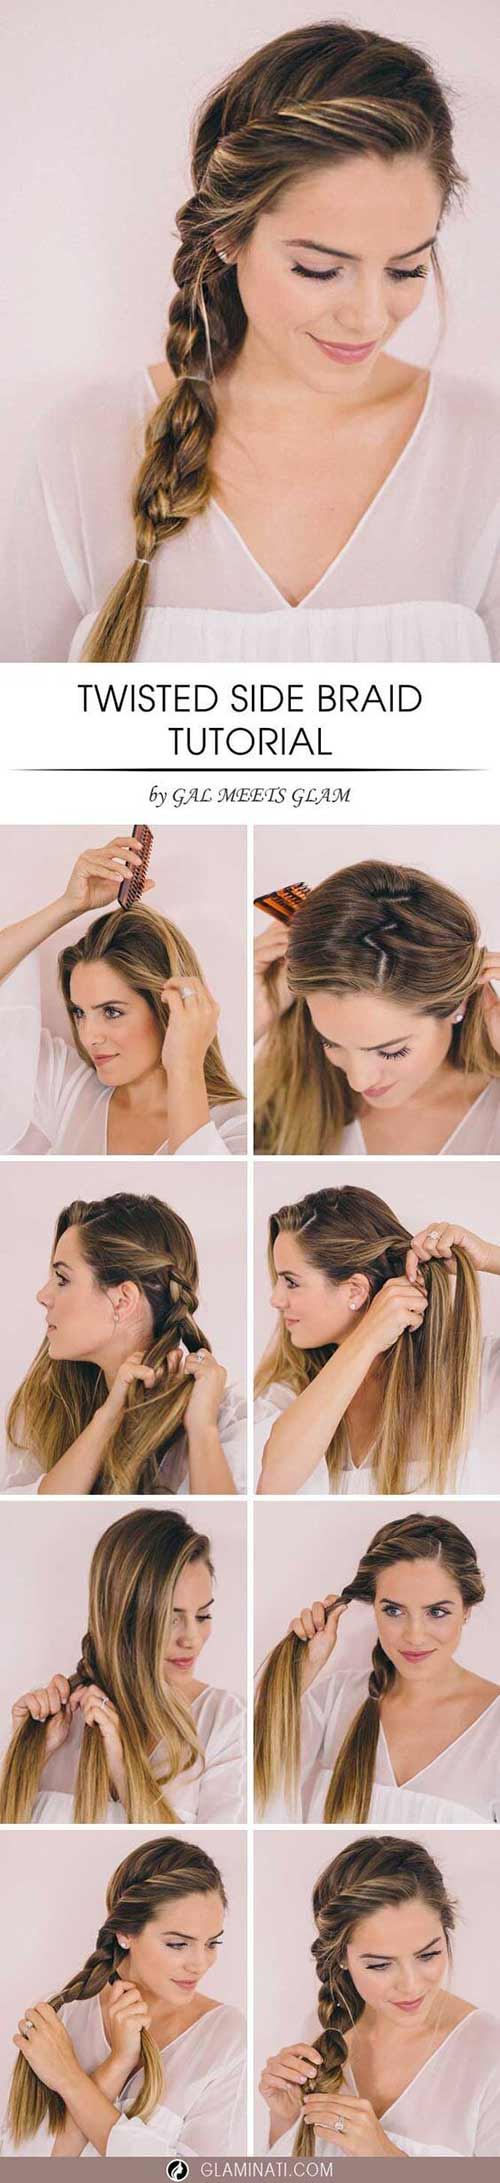 Twisted-Side-Braid hairstyle